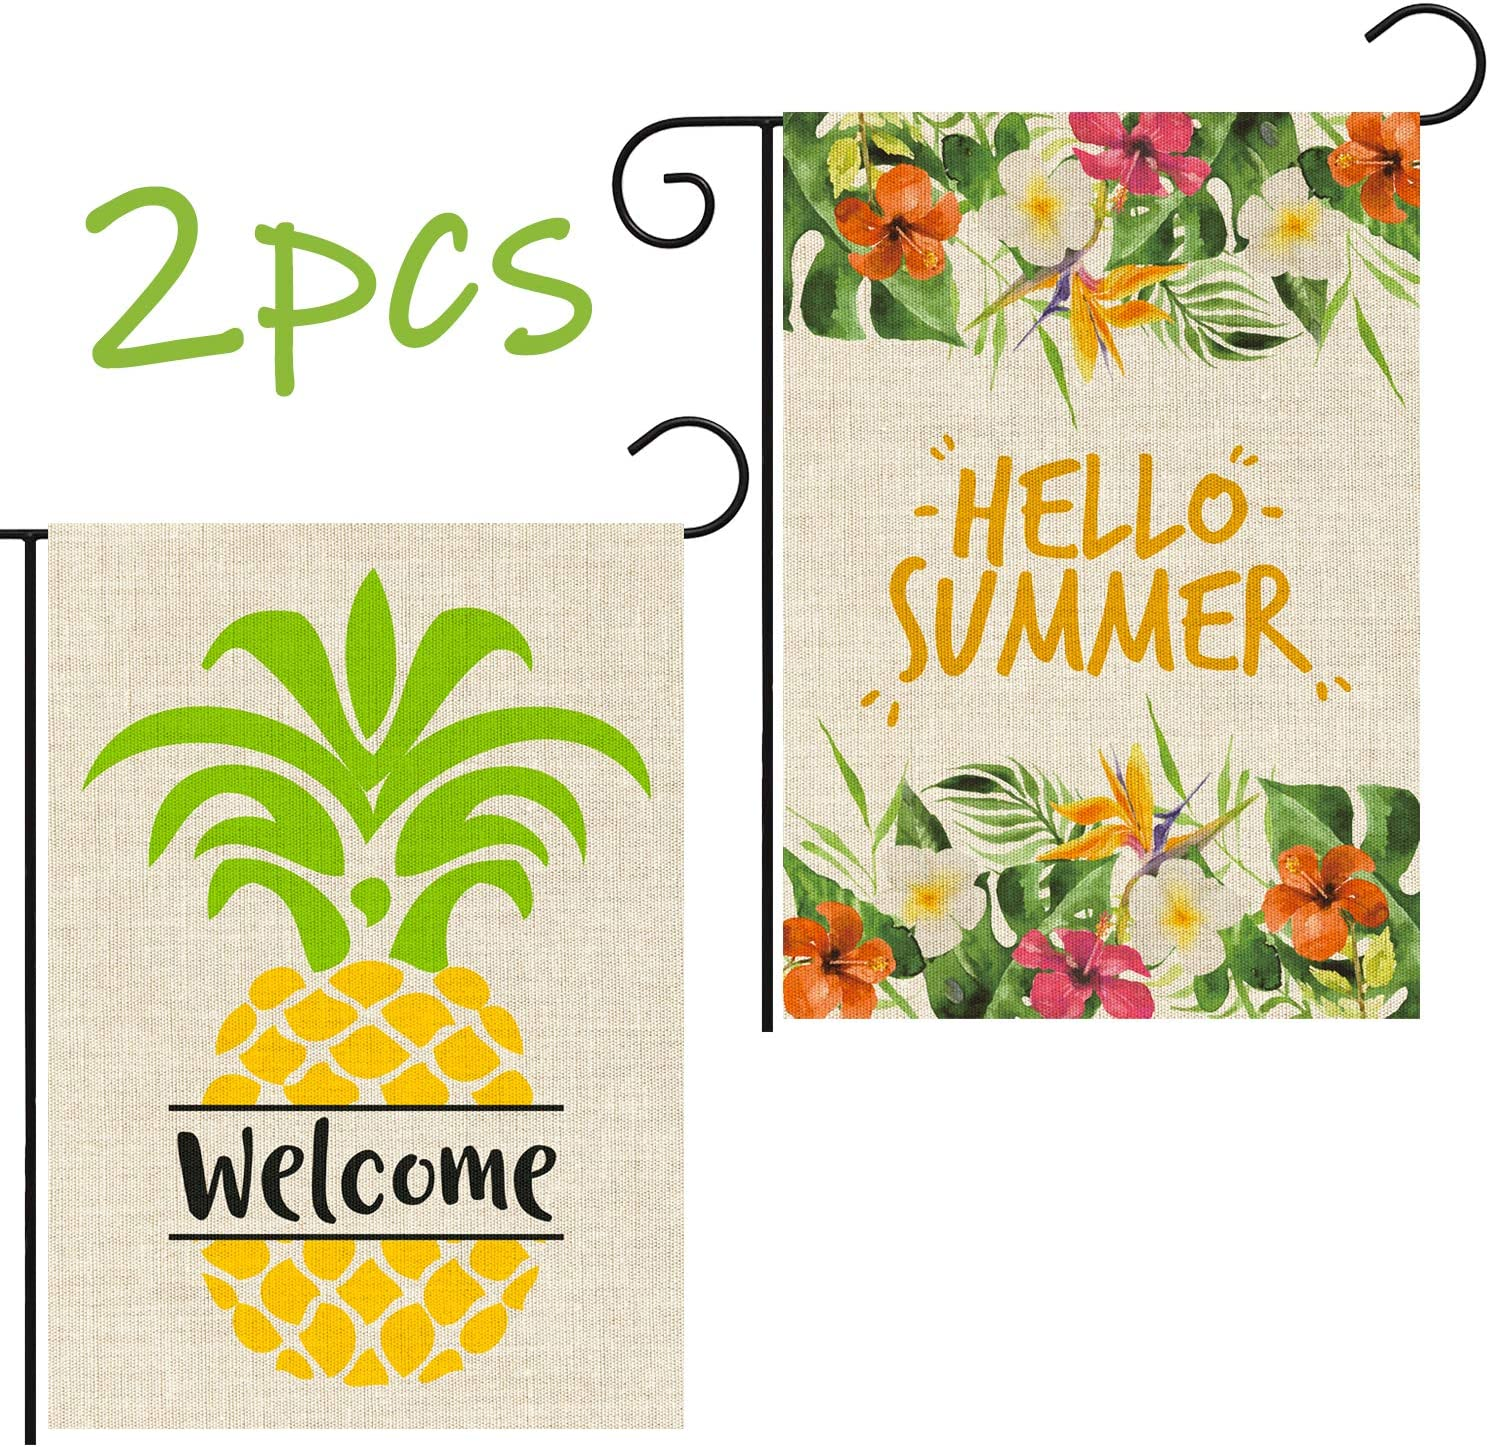 GROBRO7 2Pcs Burlap Garden Flag Summer Welcome Double Sided with Colorful Flower Pineapple Fruit Yard Flags Decorative for Outdoor Party(12x18 Inch)